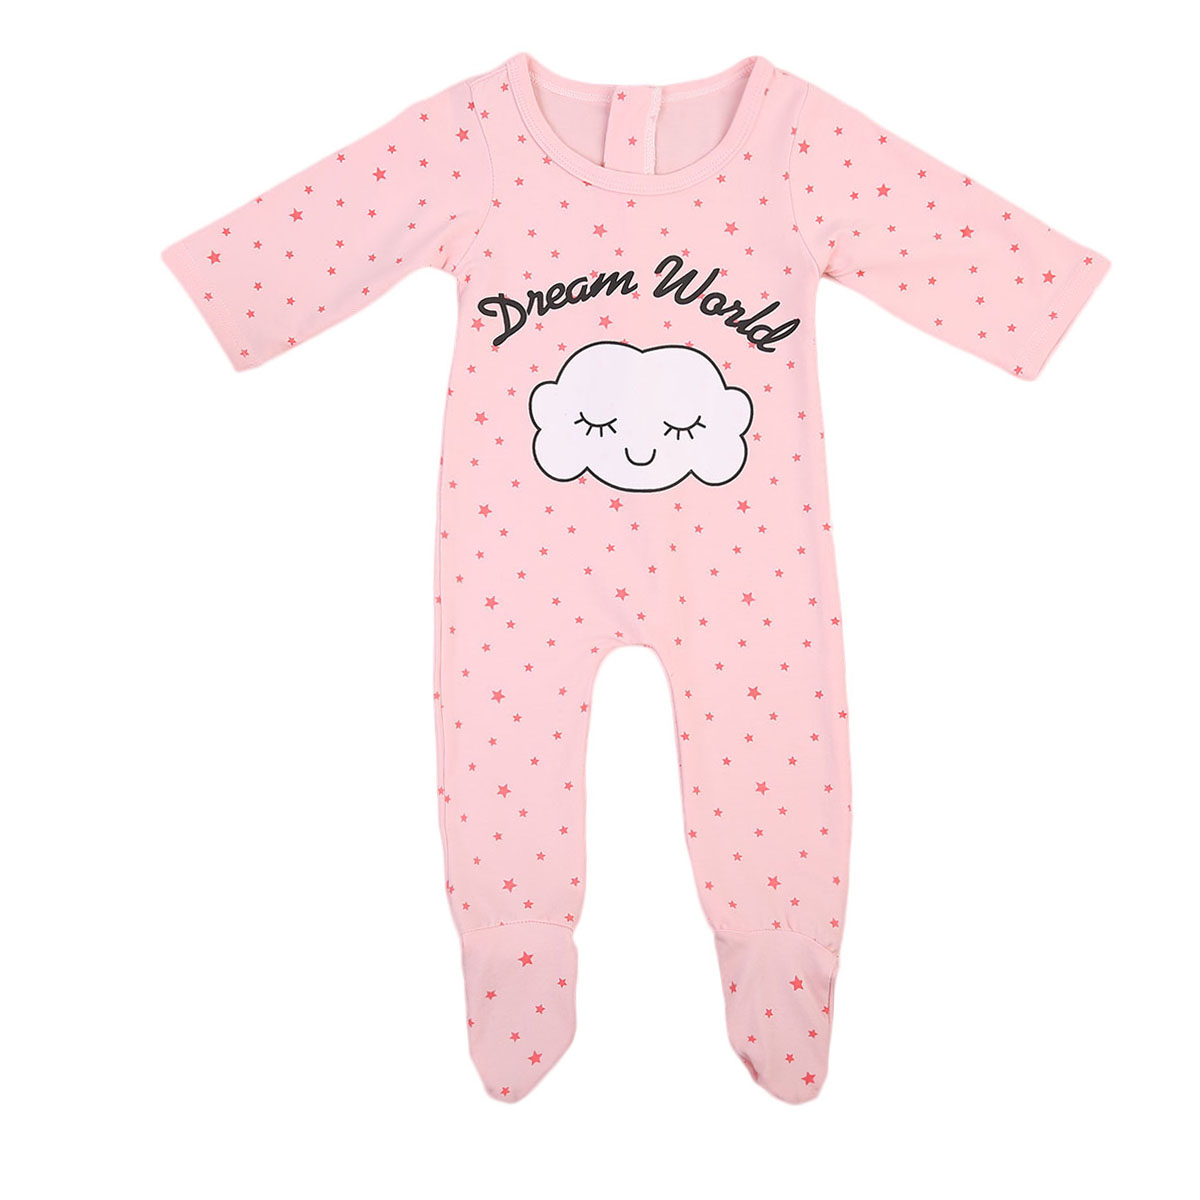 NEW Style Toddler Kids Baby Girls Long Sleeve Soft Cotton Cute Clouds Star Fashion Footies 0-24M